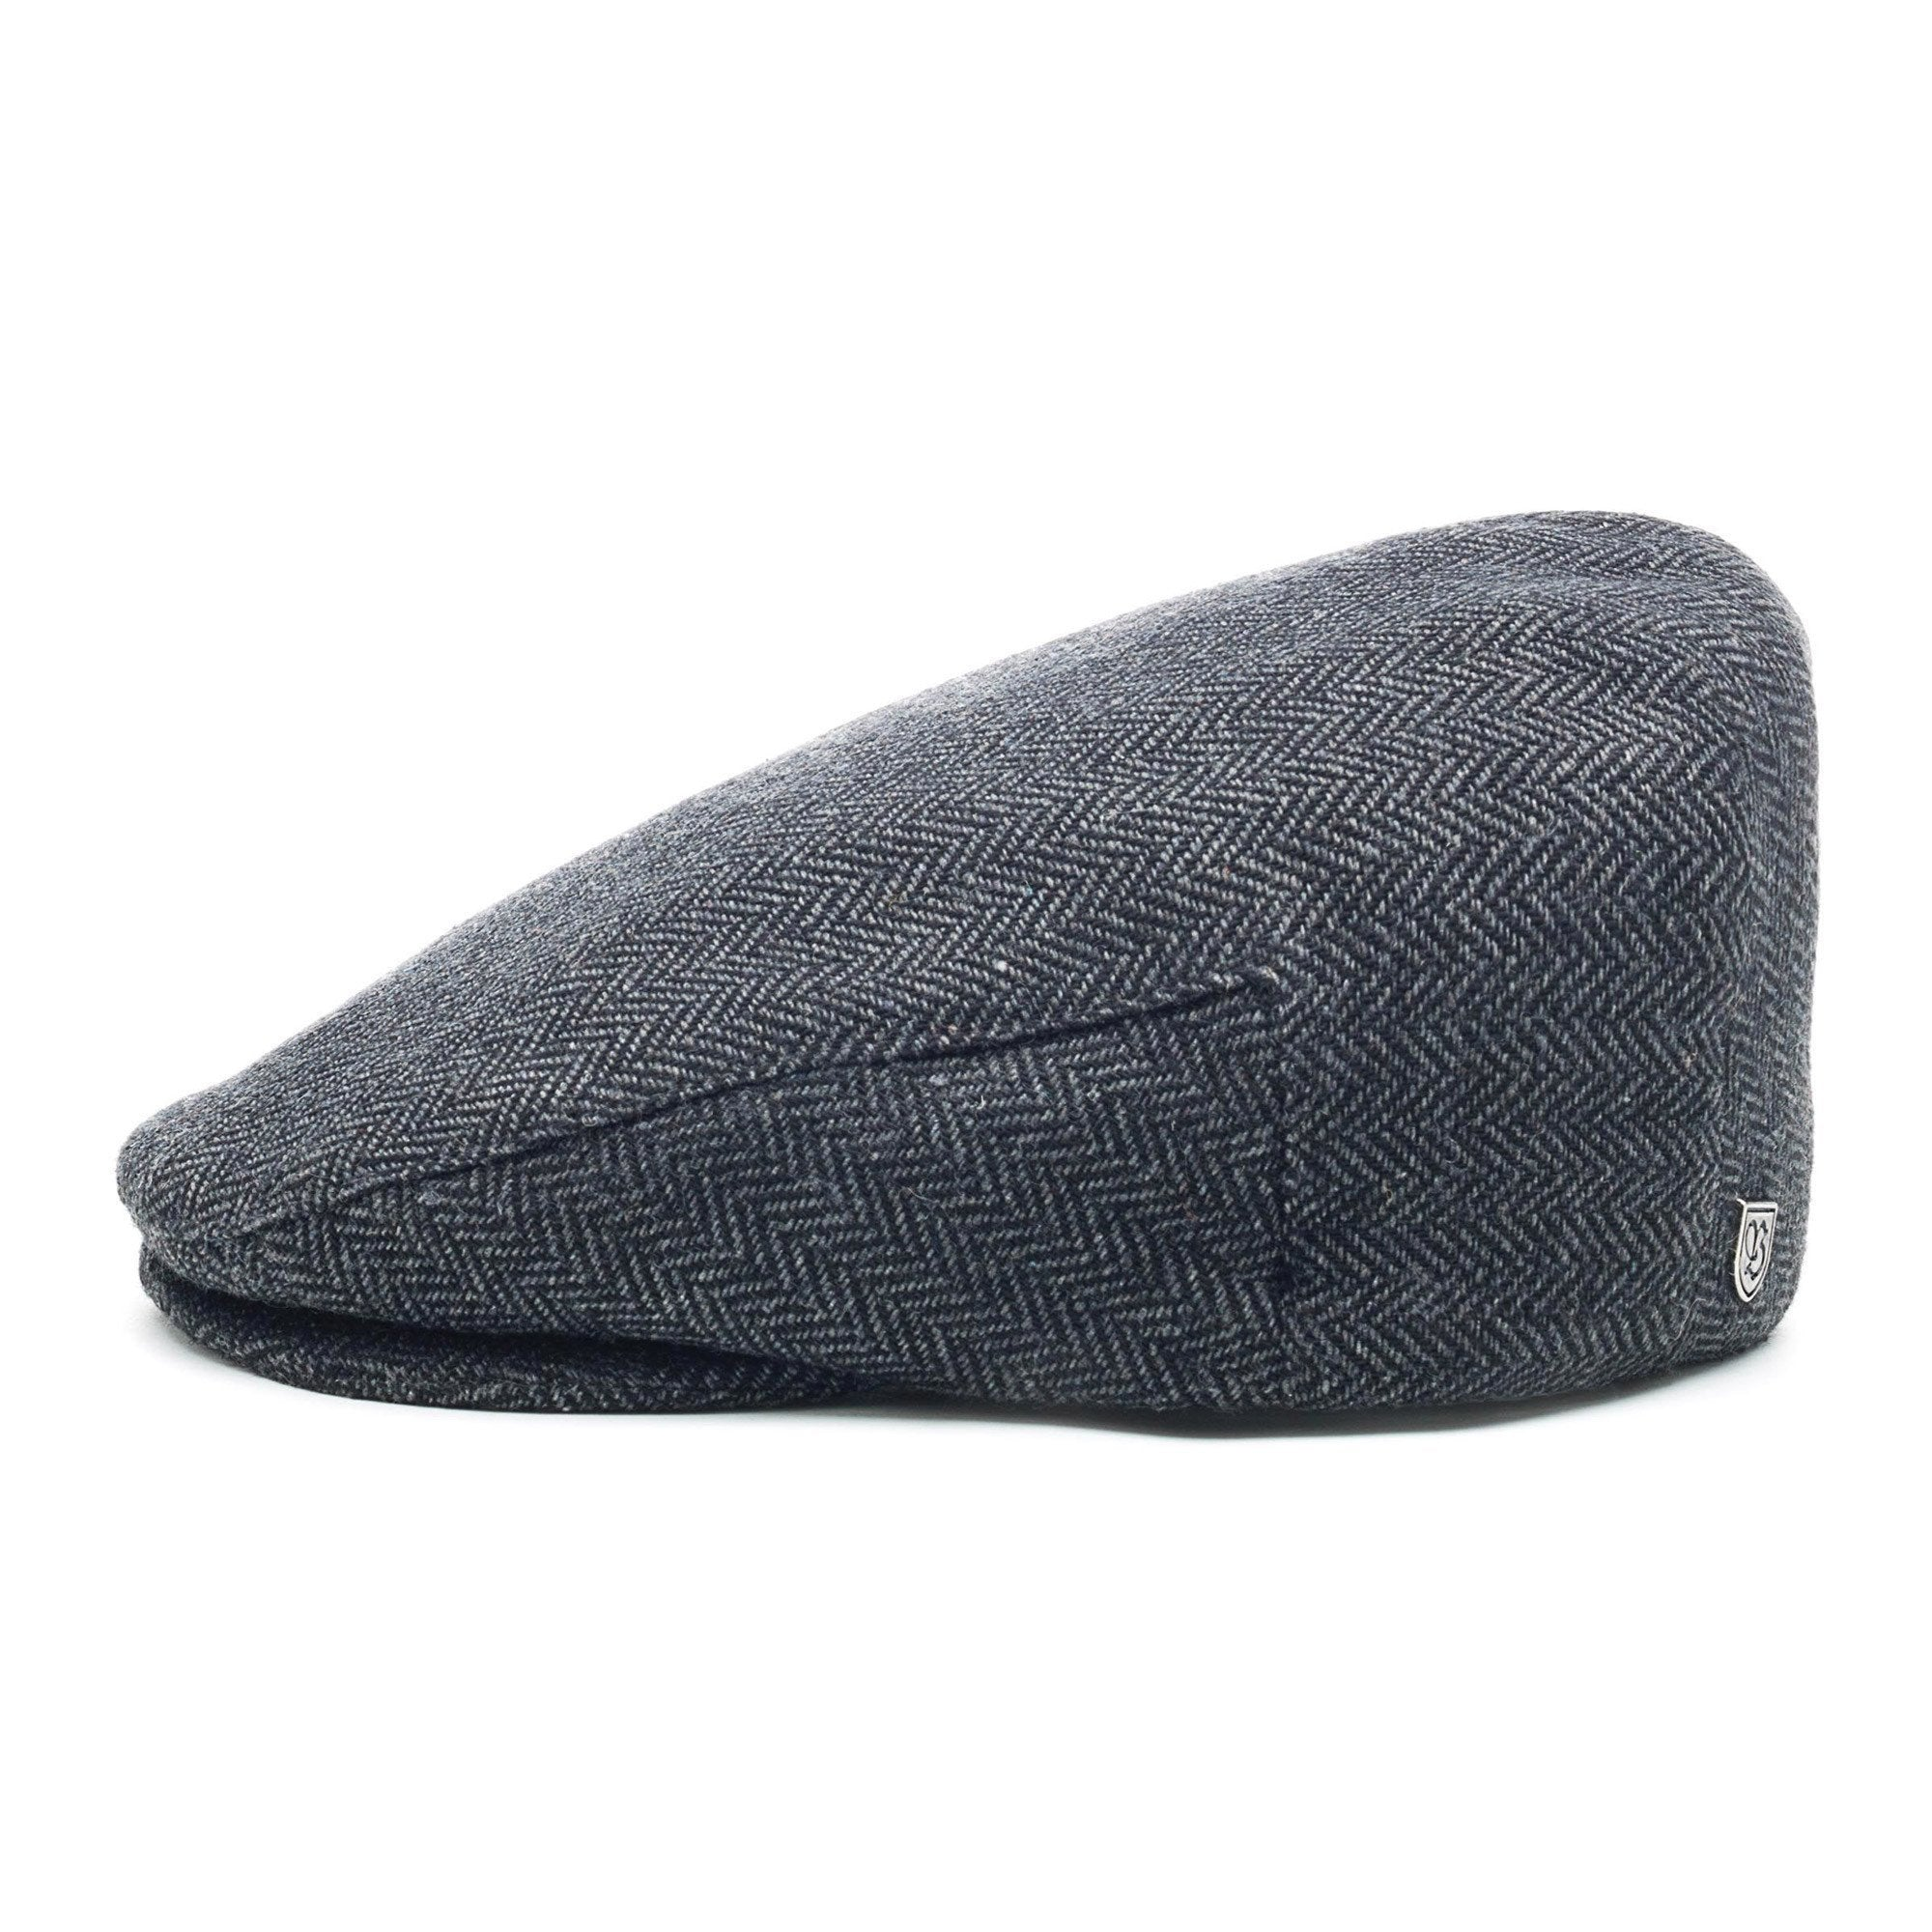 Brixton Hooligan Flat Cap - Grey Black  ddb502816fe1